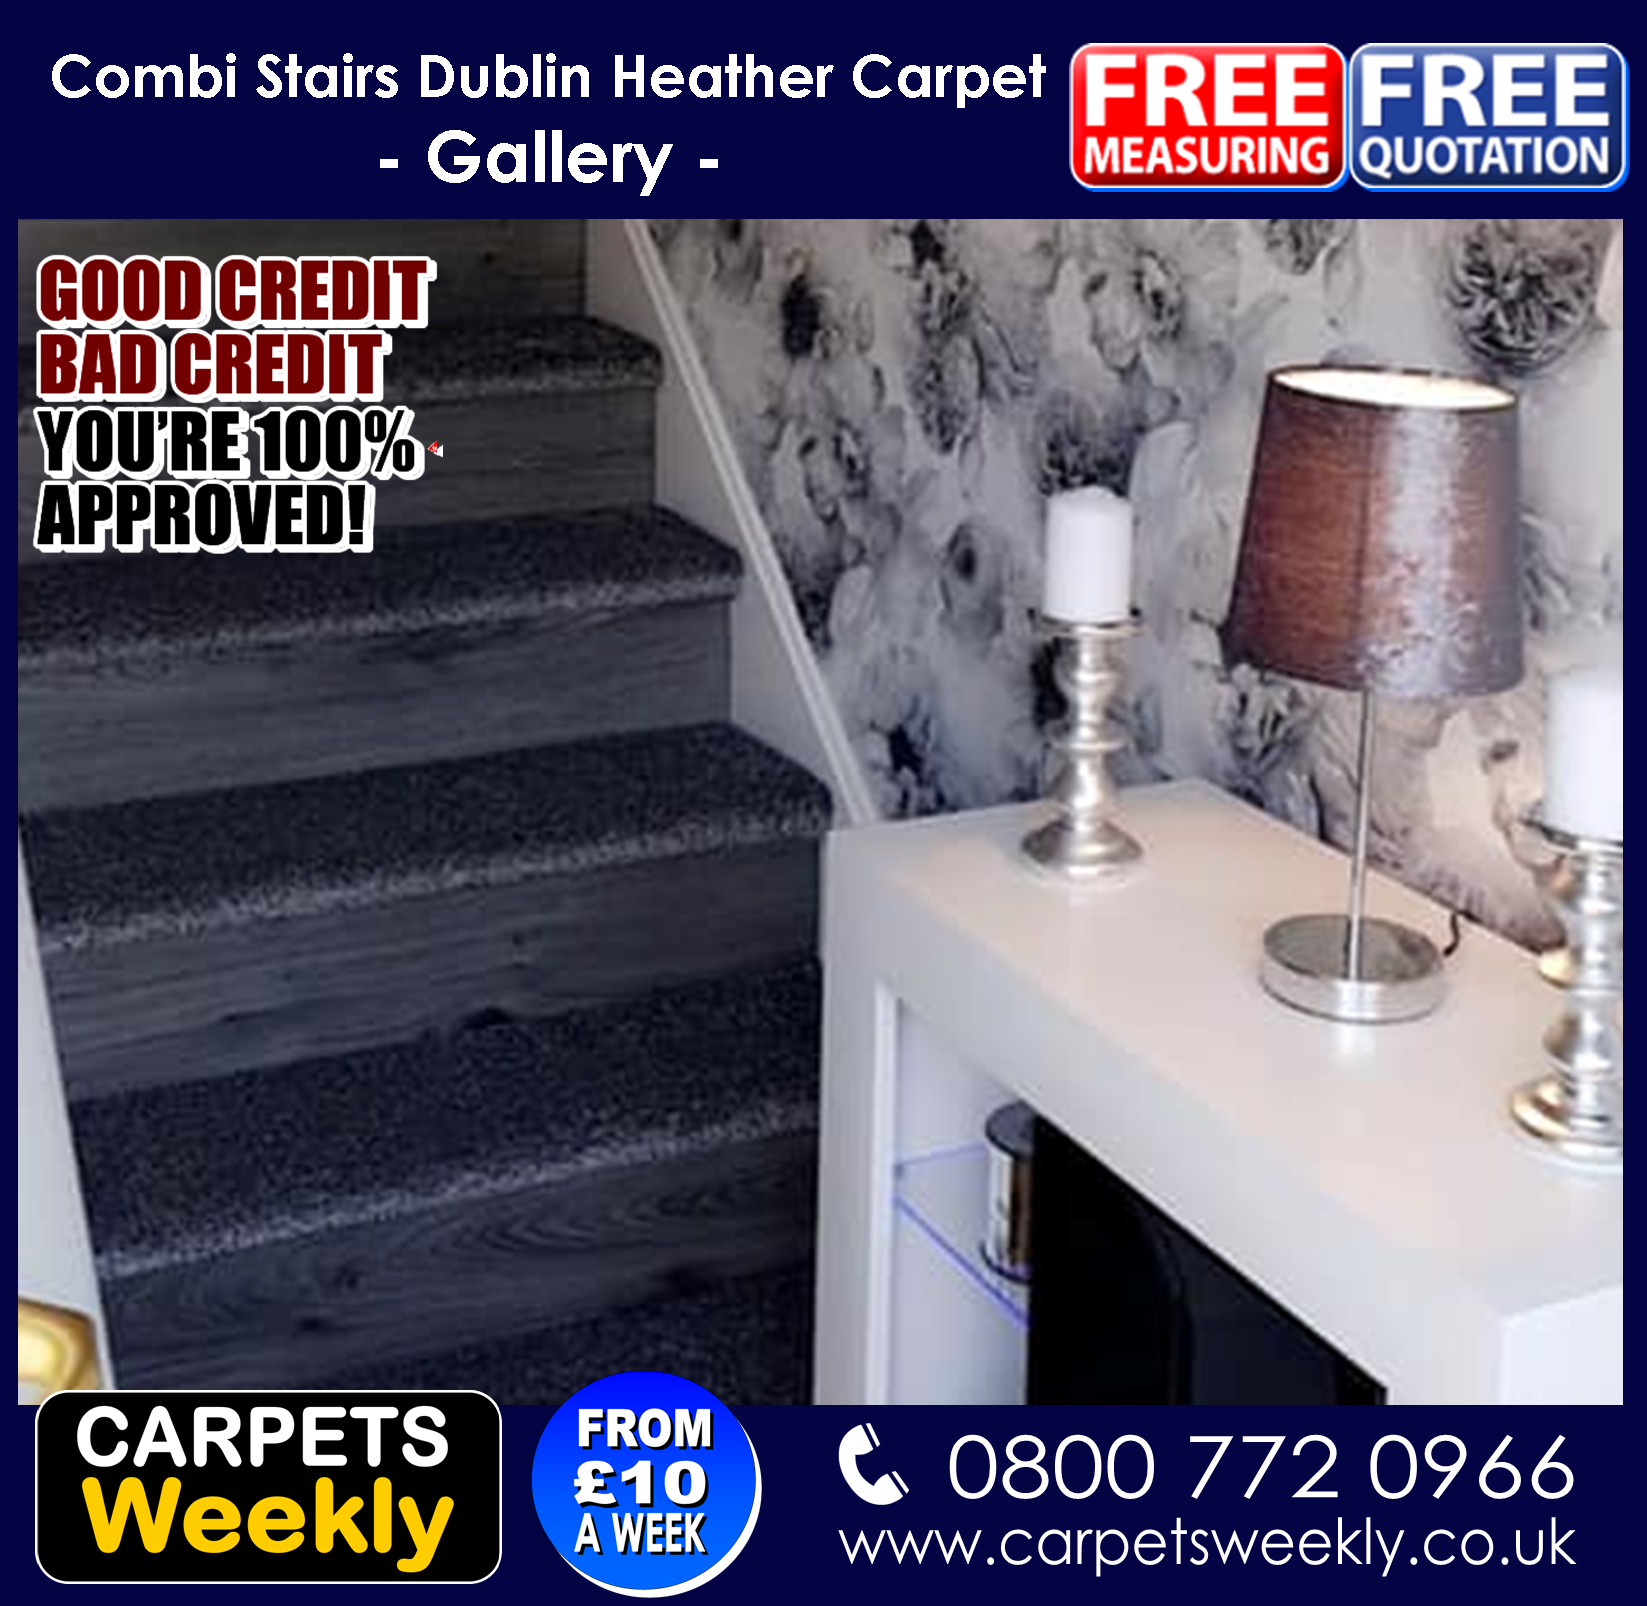 Dublin Heather Carpet Range from Quick Fit Carpets